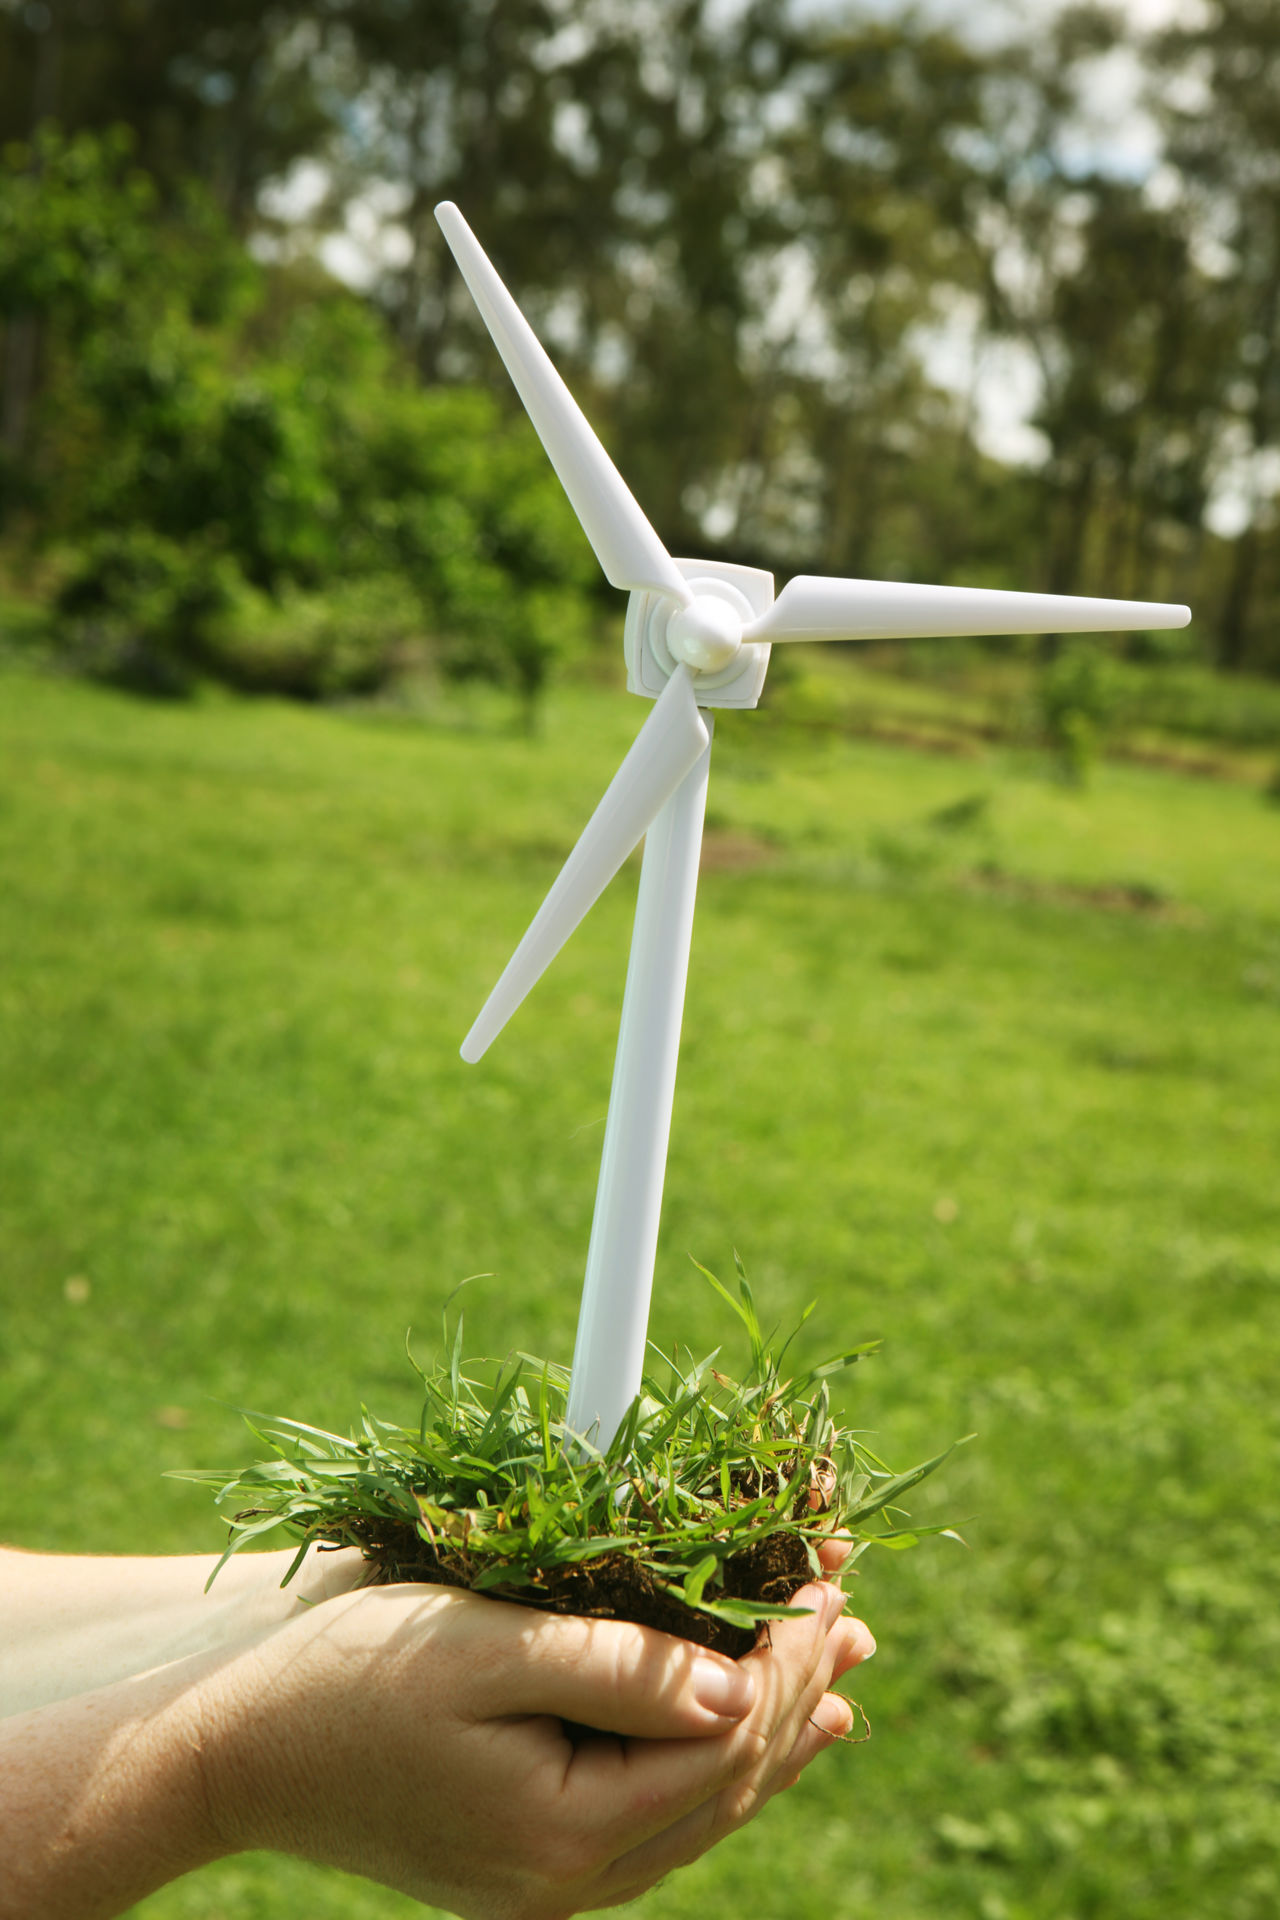 Wind Turbine in hands Alternative Energy Day Environment Environmental Conservation Green Green Energy Miniature Outdoors Power Toy Wind Wind Power Wind Power Generator Wind Turbine Wind Turbines